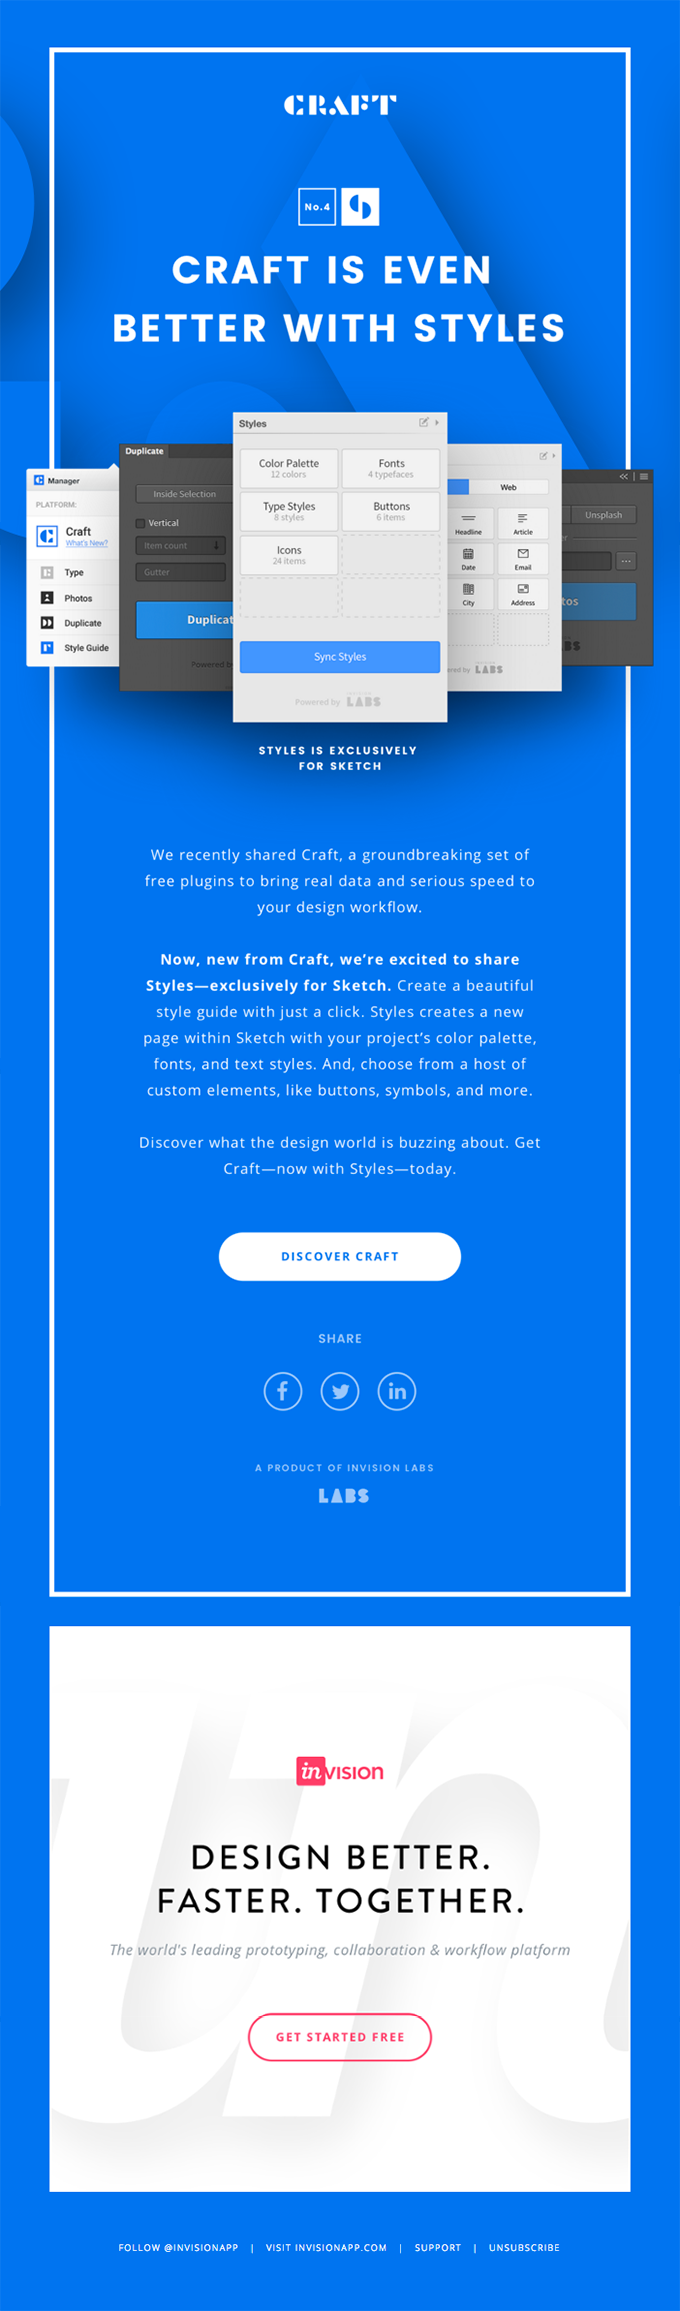 of the Best Examples of Beautiful Email Design